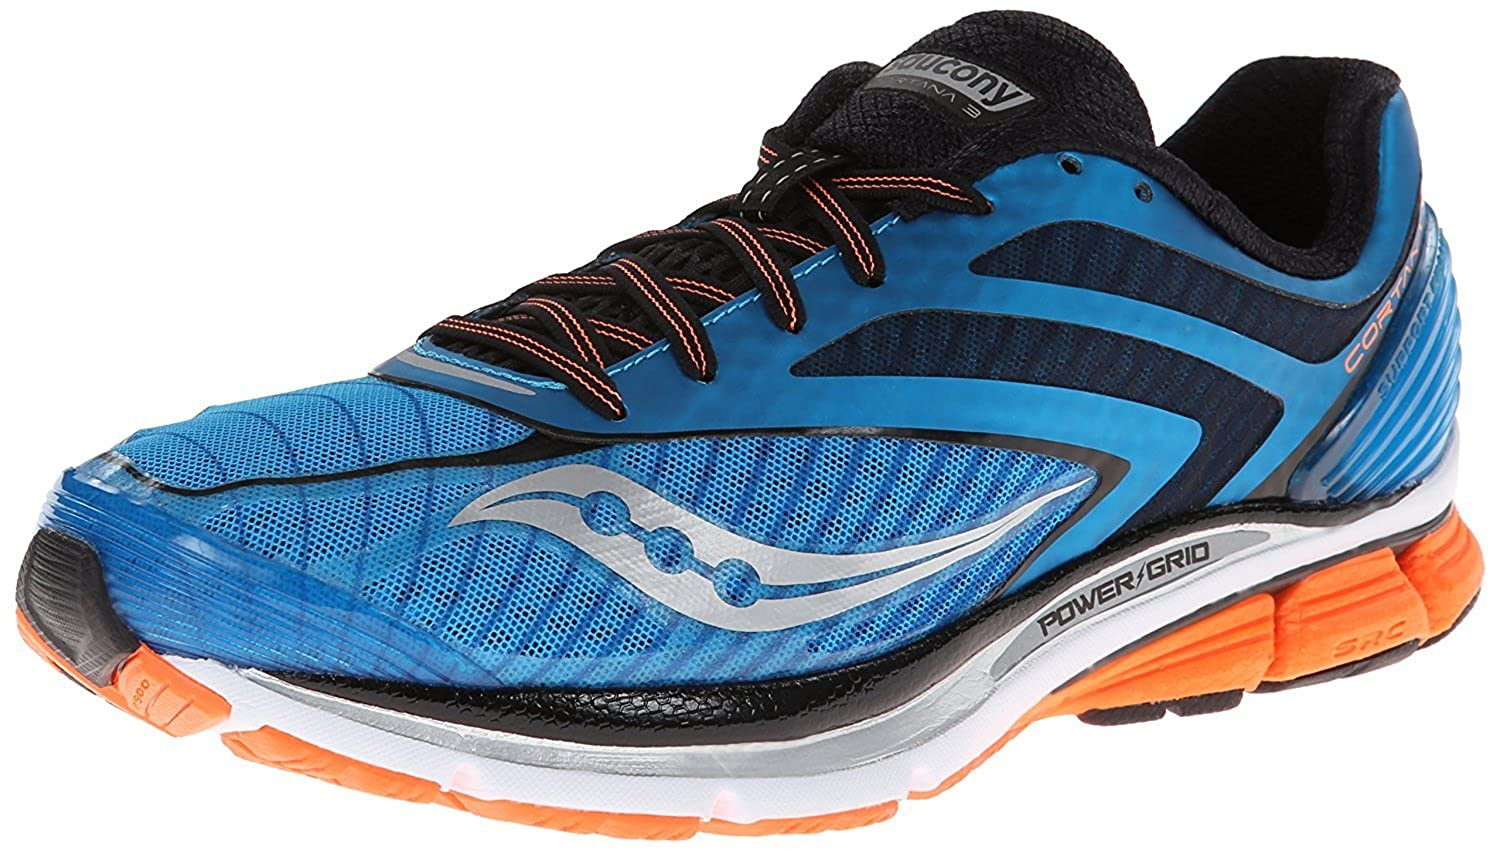 Saucony Men s Cortana 3 Running Shoe Blau 44 D(M) EU/9 D(M) UK